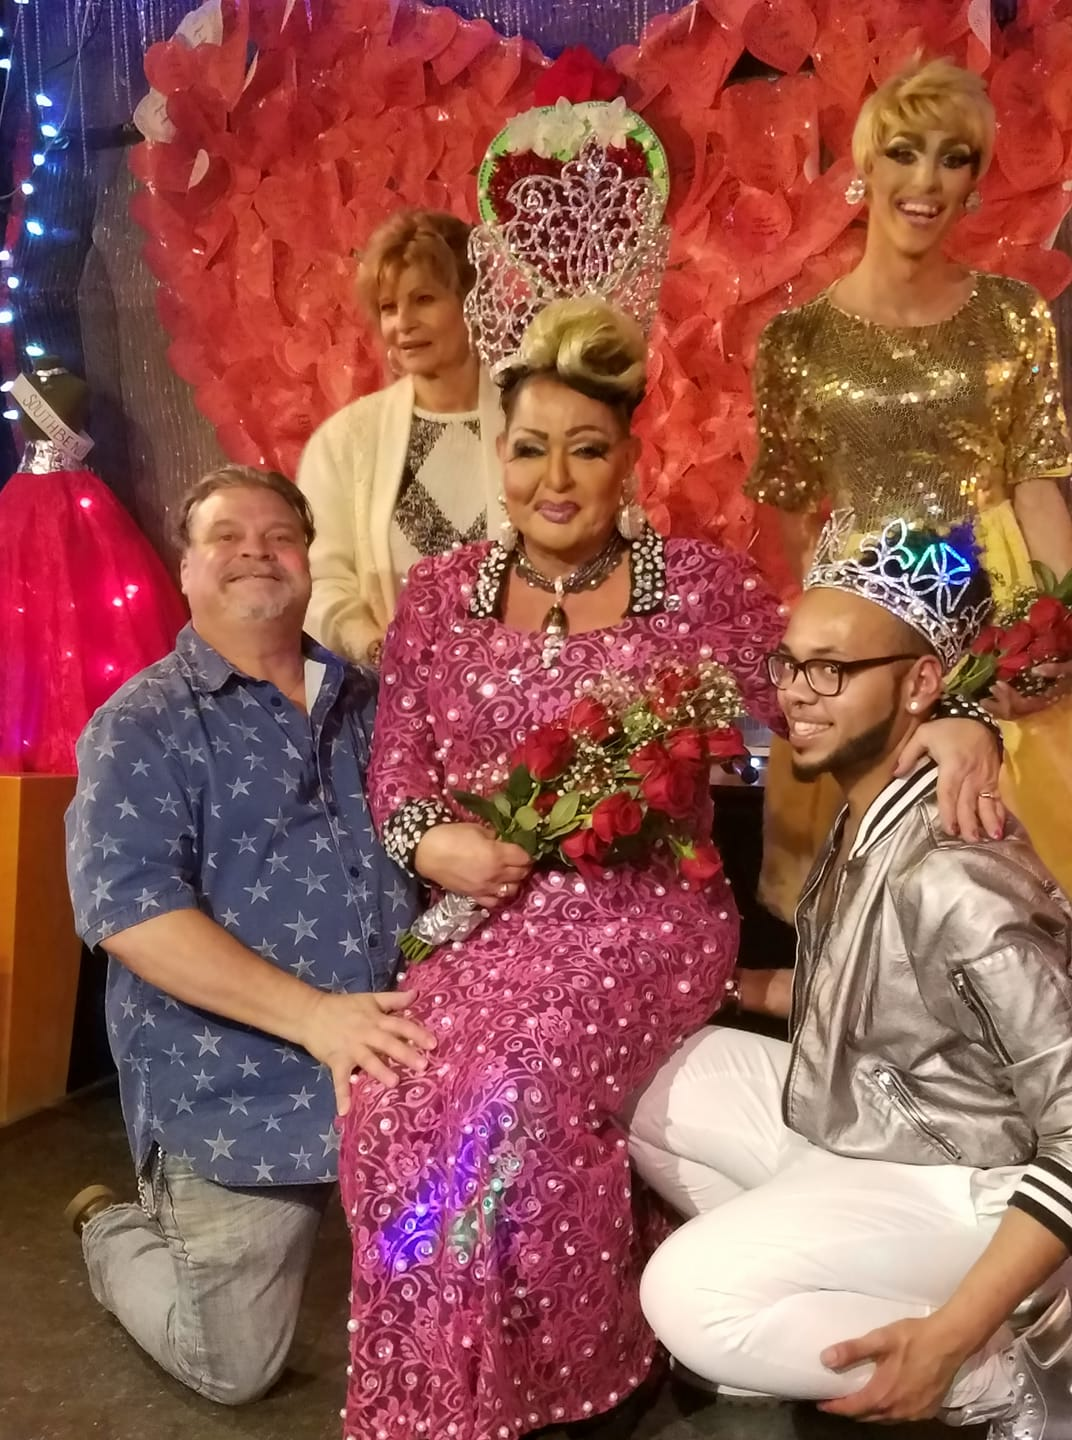 Coco Kane shortly after being crowned the very first Miss Southbend Classic at Southbend Tavern in Columbus, Ohio on the evening of February 25th, 2018. Back row is Miss Connie (Bar Owner) and Jennifer Lynn Ali (Miss Southbend 2018). In front row is Gerard Jones, Coco Kane (Miss Southbend Classic 2018) and Isaac Ismael (Mr. Southbend 2017).